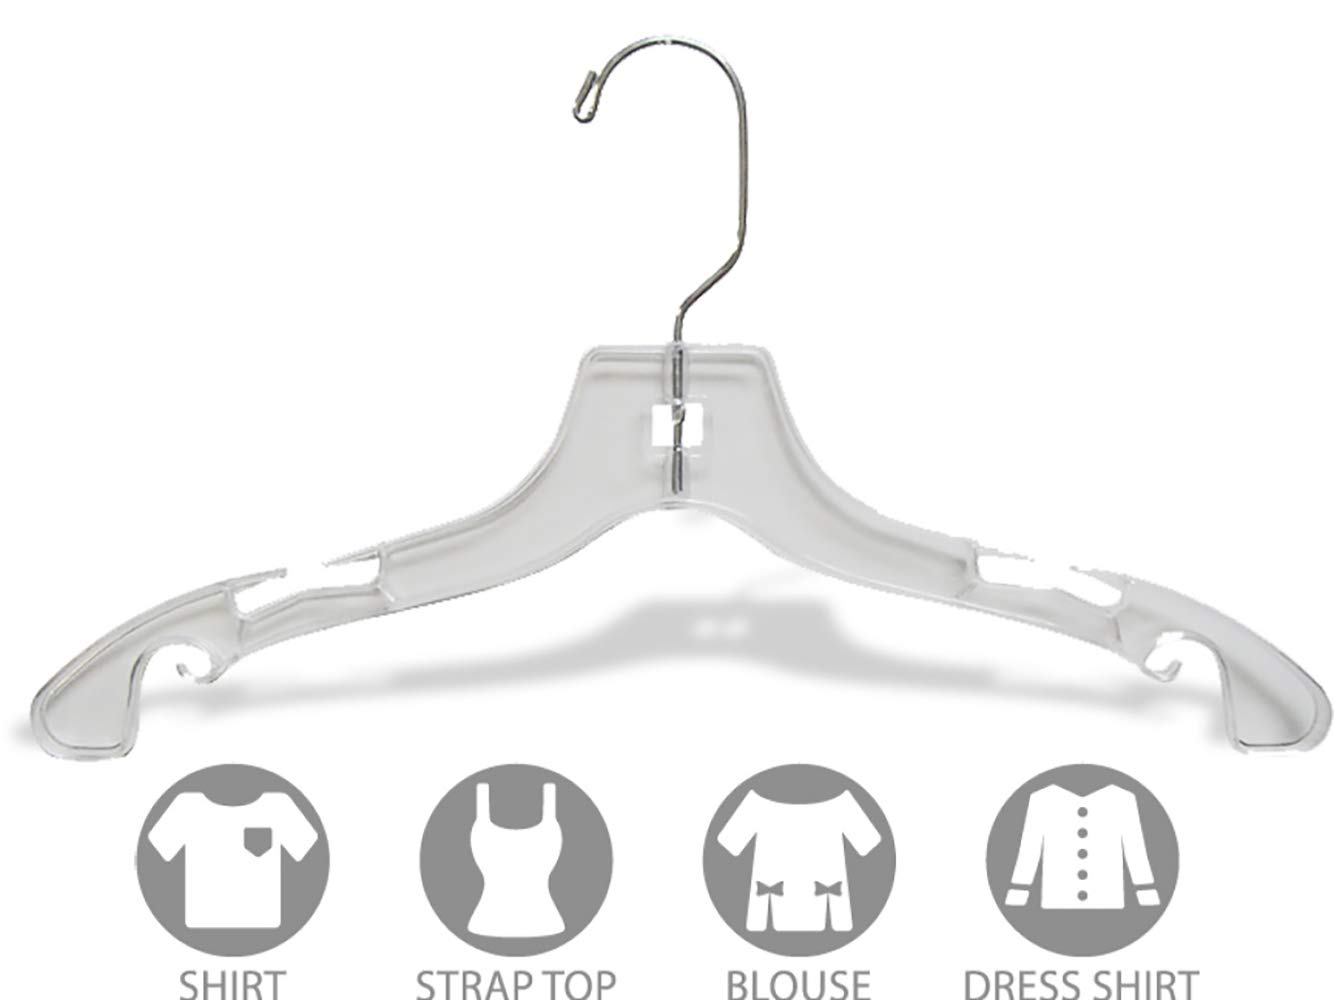 The Great American Hanger Company Clear Plastic Baby Top Hanger, Box of 25 Small 10 inch Space Saving Childrens Shirt Hangers with Notches and 360 Degree Chrome Swivel Hook